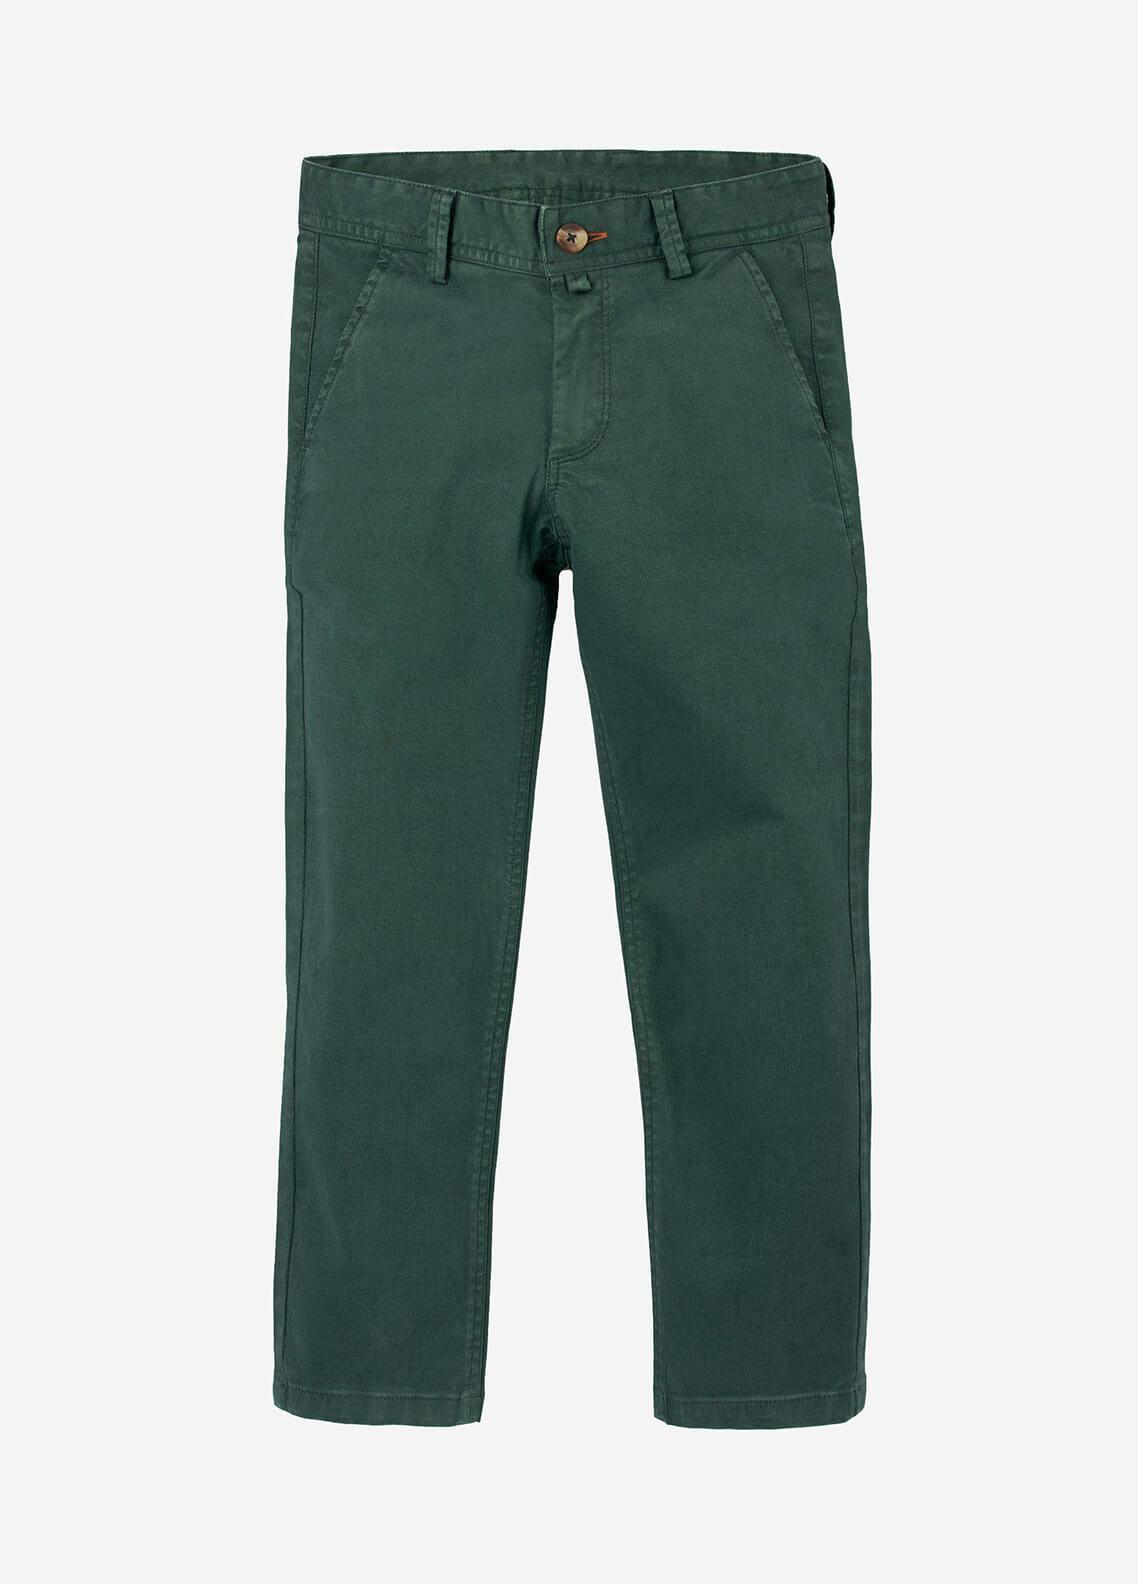 Brumano Cotton Casual Trousers for Boys -  BRM-555-Green